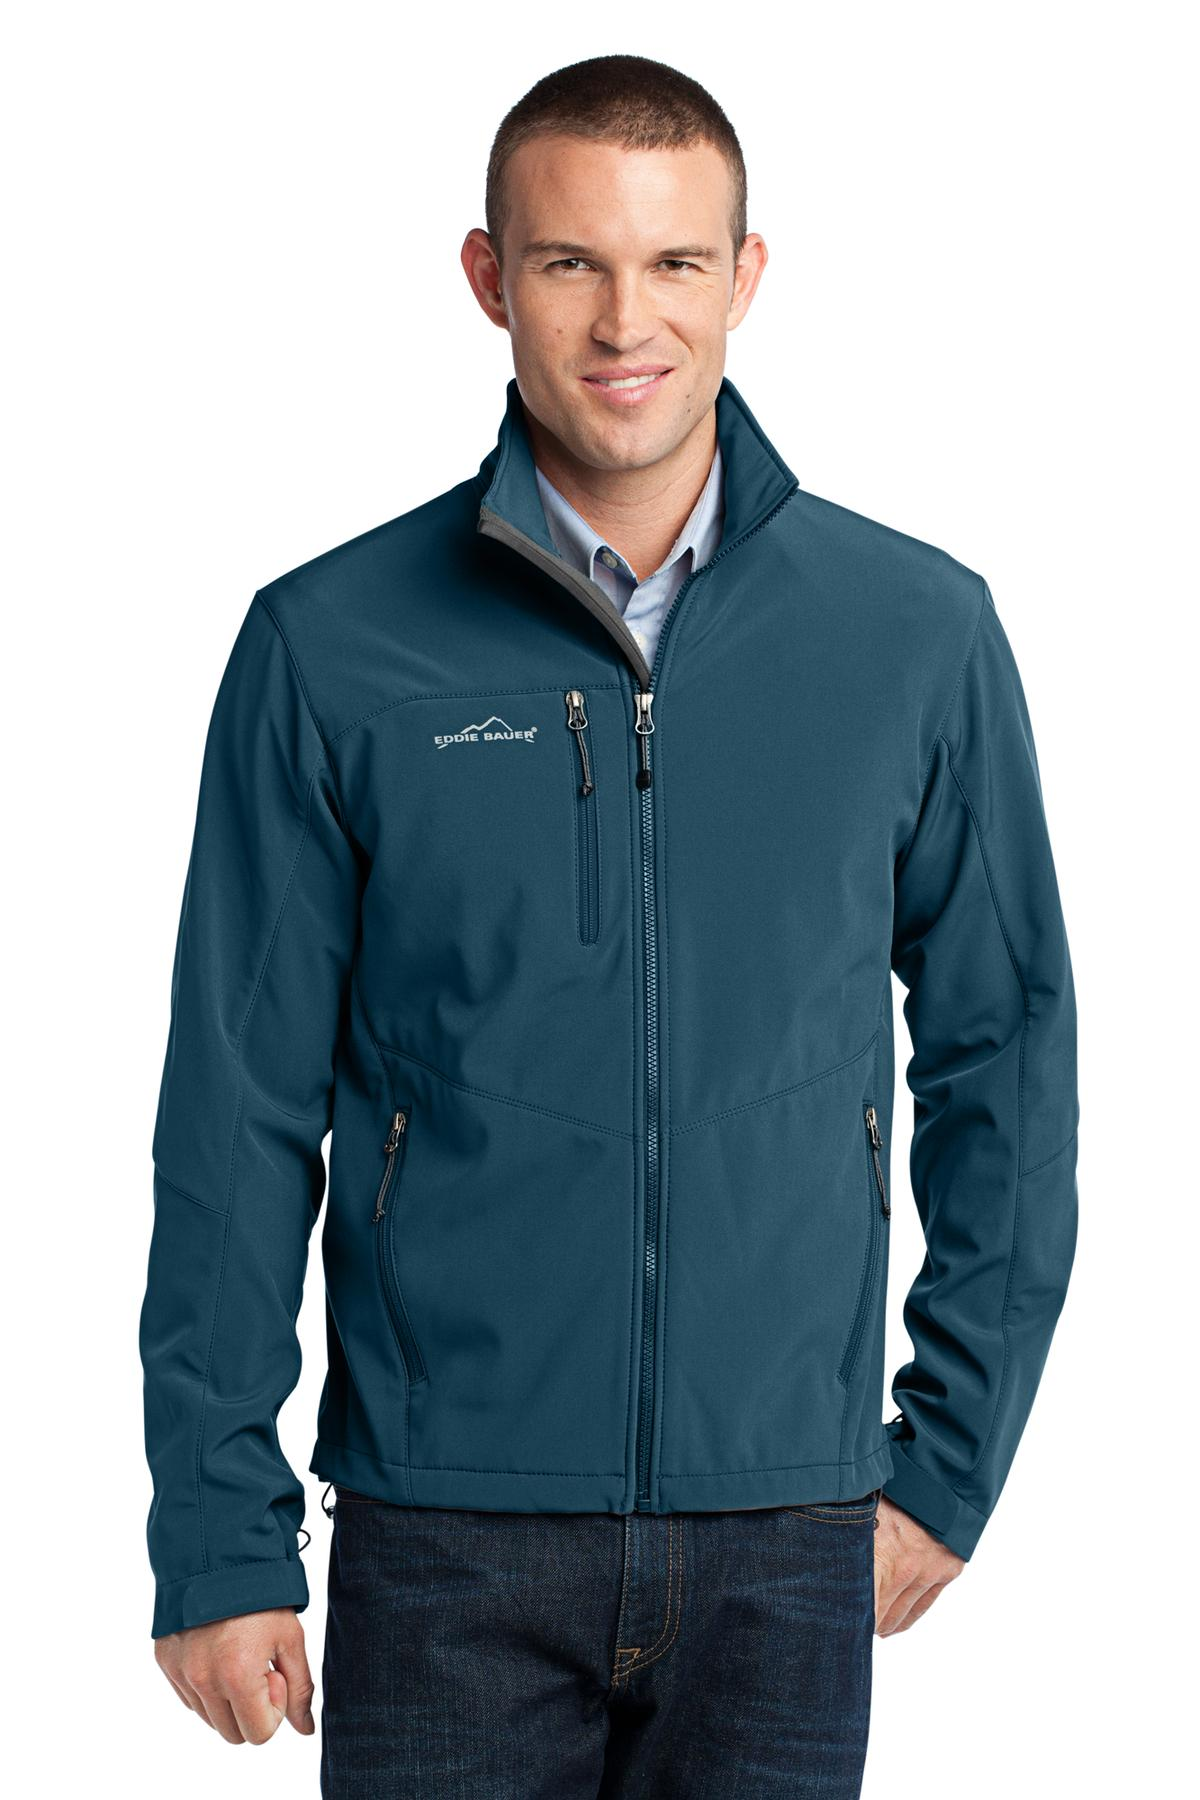 Outerwear-Soft-Shells-9